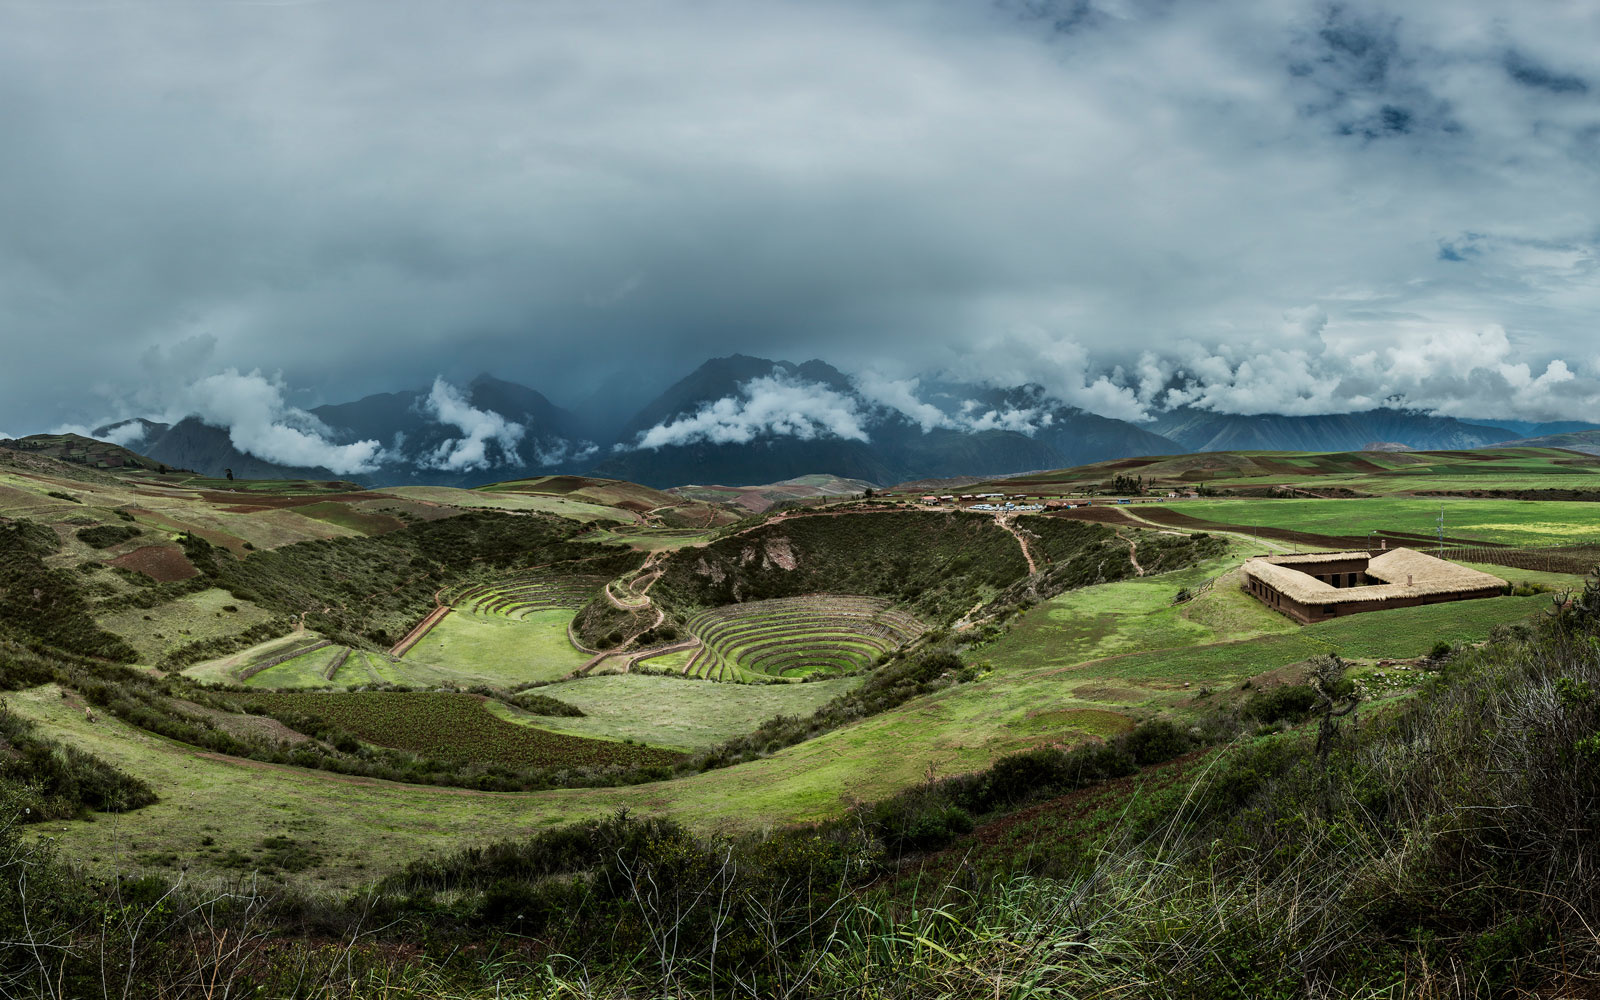 This restaurant is perched on the edge of an Incan ruin in Peru's Sacred Valley